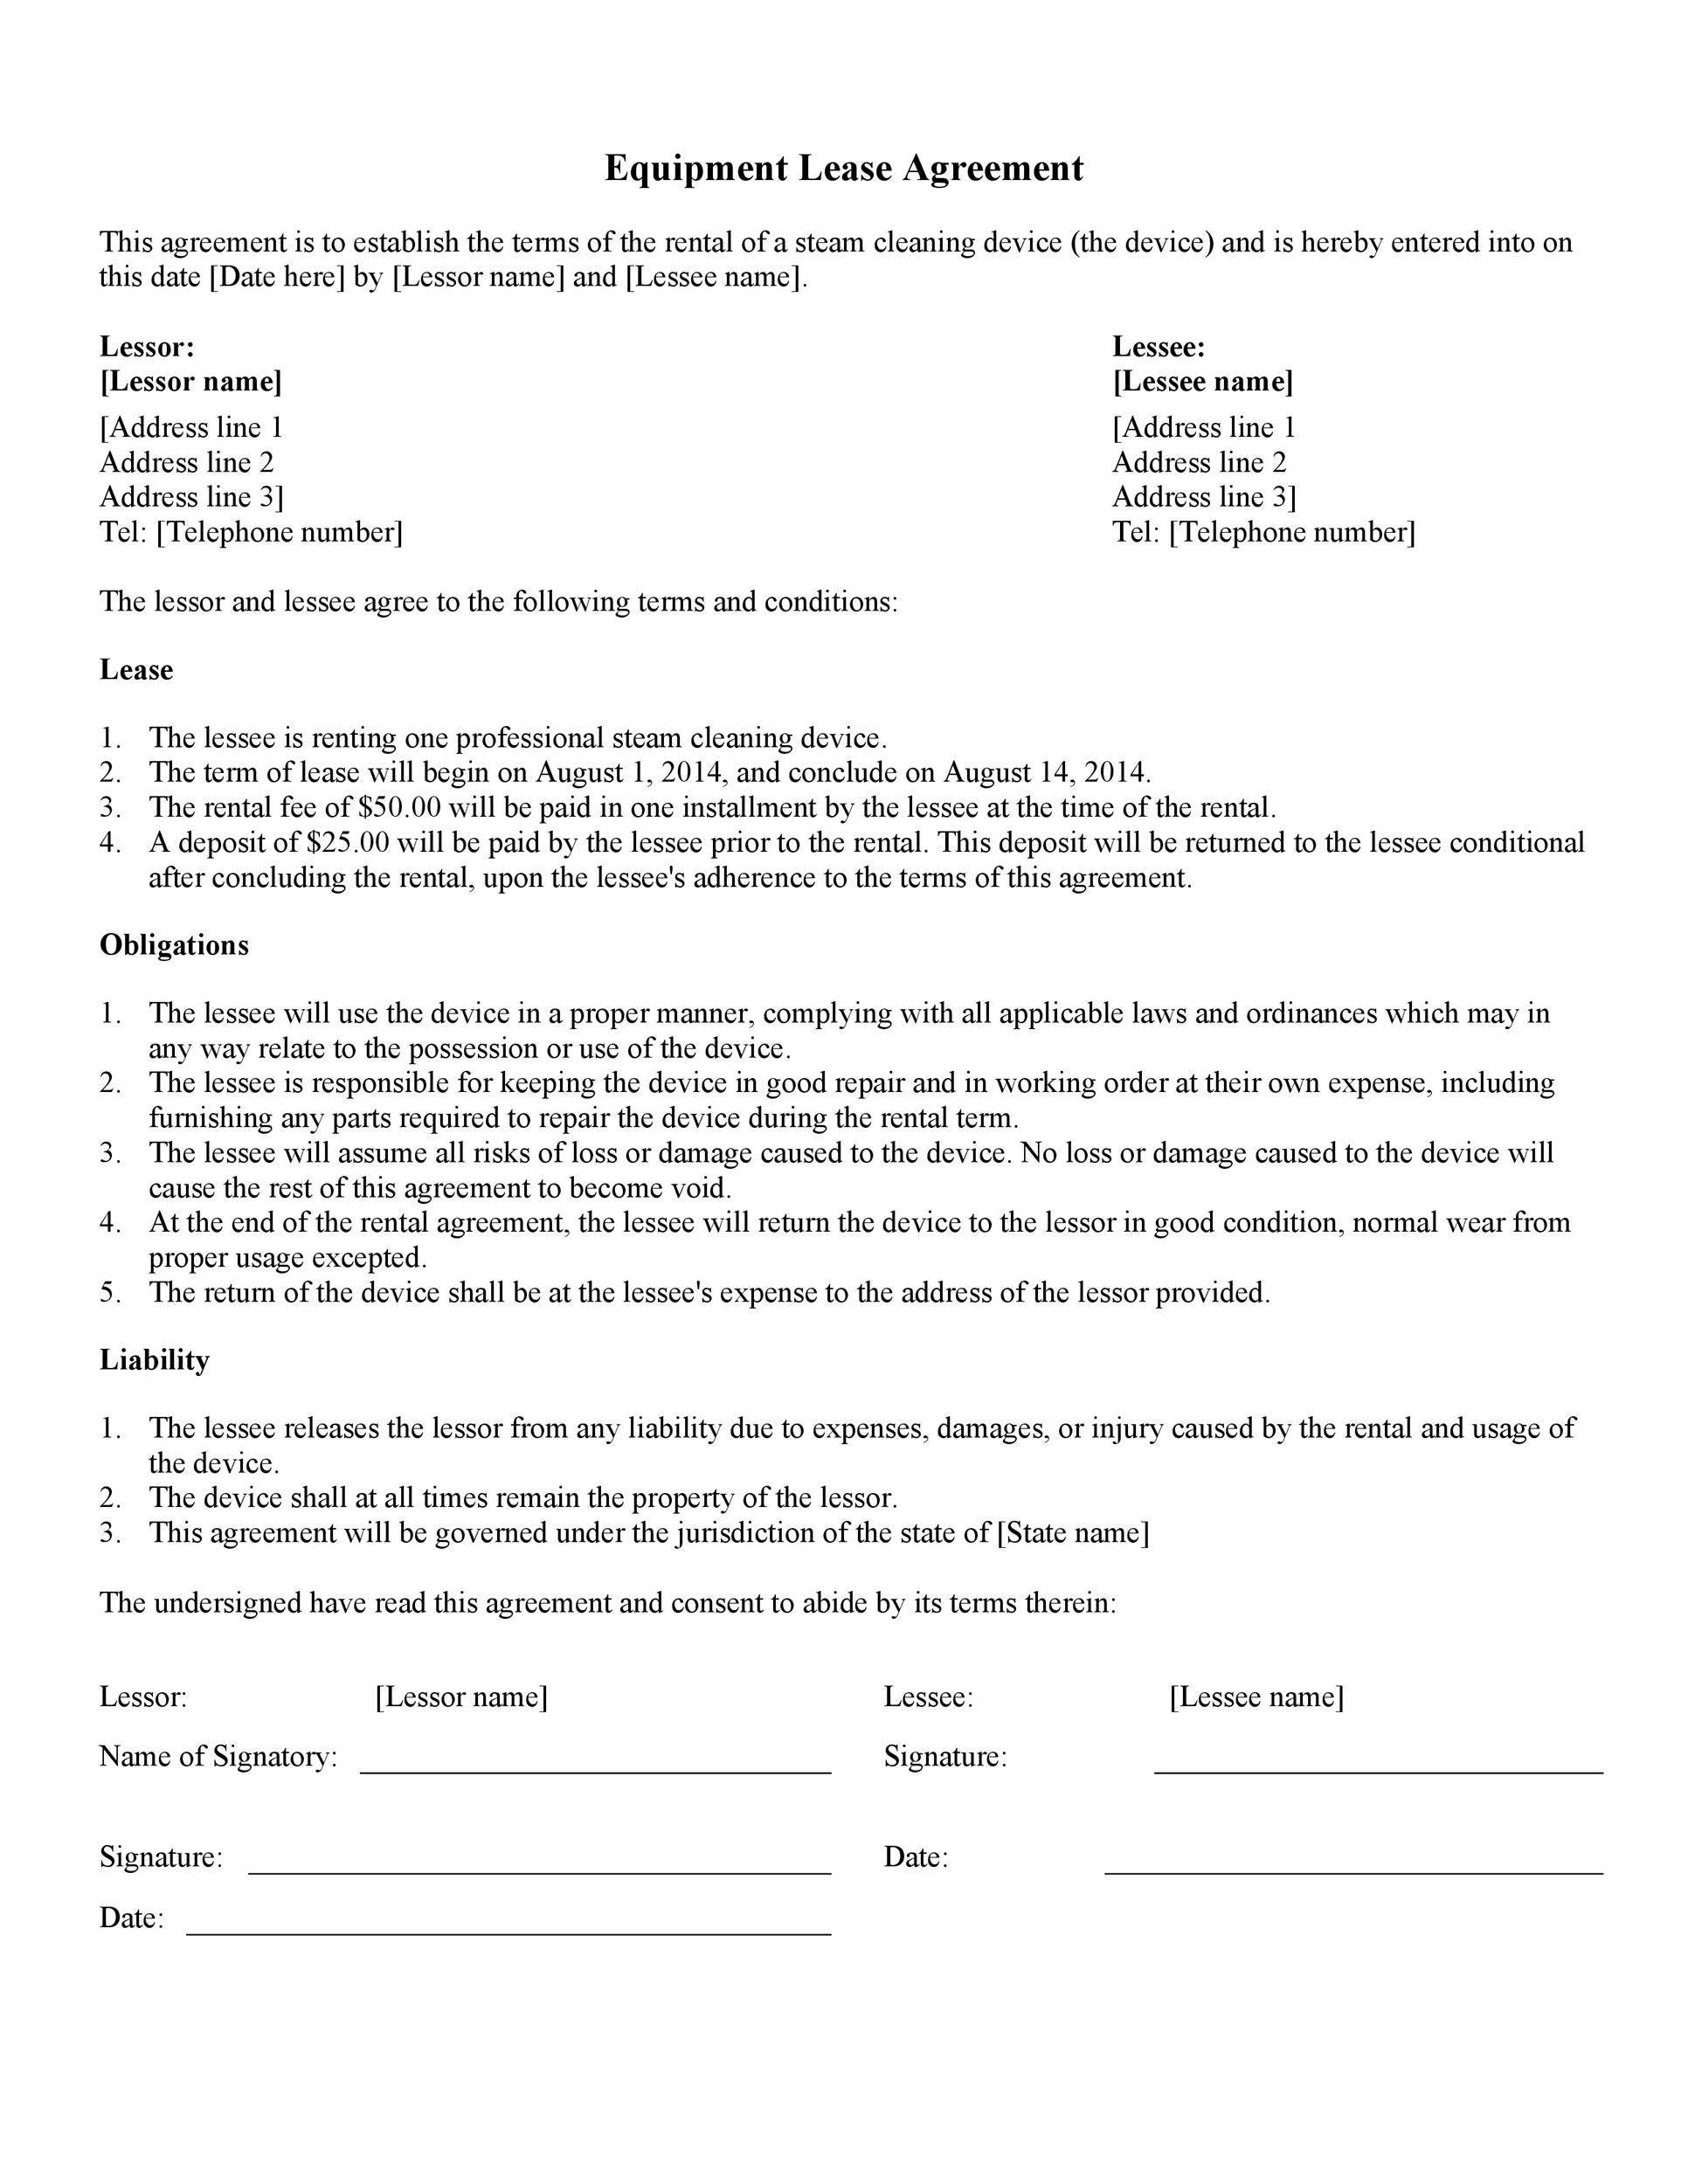 44 Simple Equipment Lease Agreement Templates